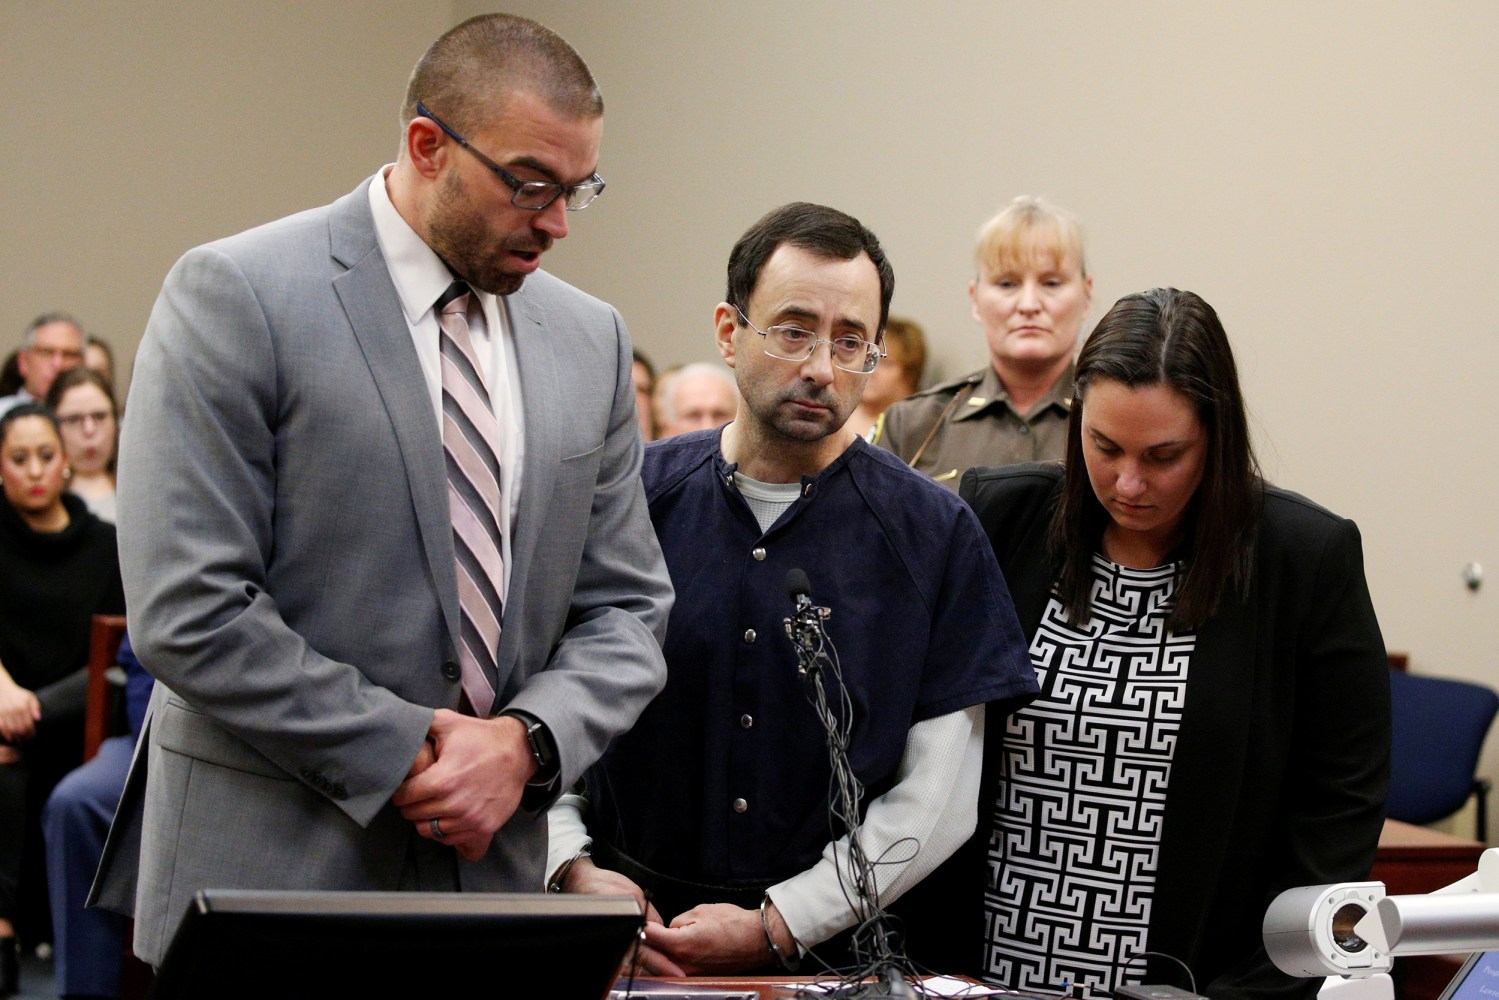 Gymnastics doctor Larry Nassar sentenced to up to 175 years for sex abuse